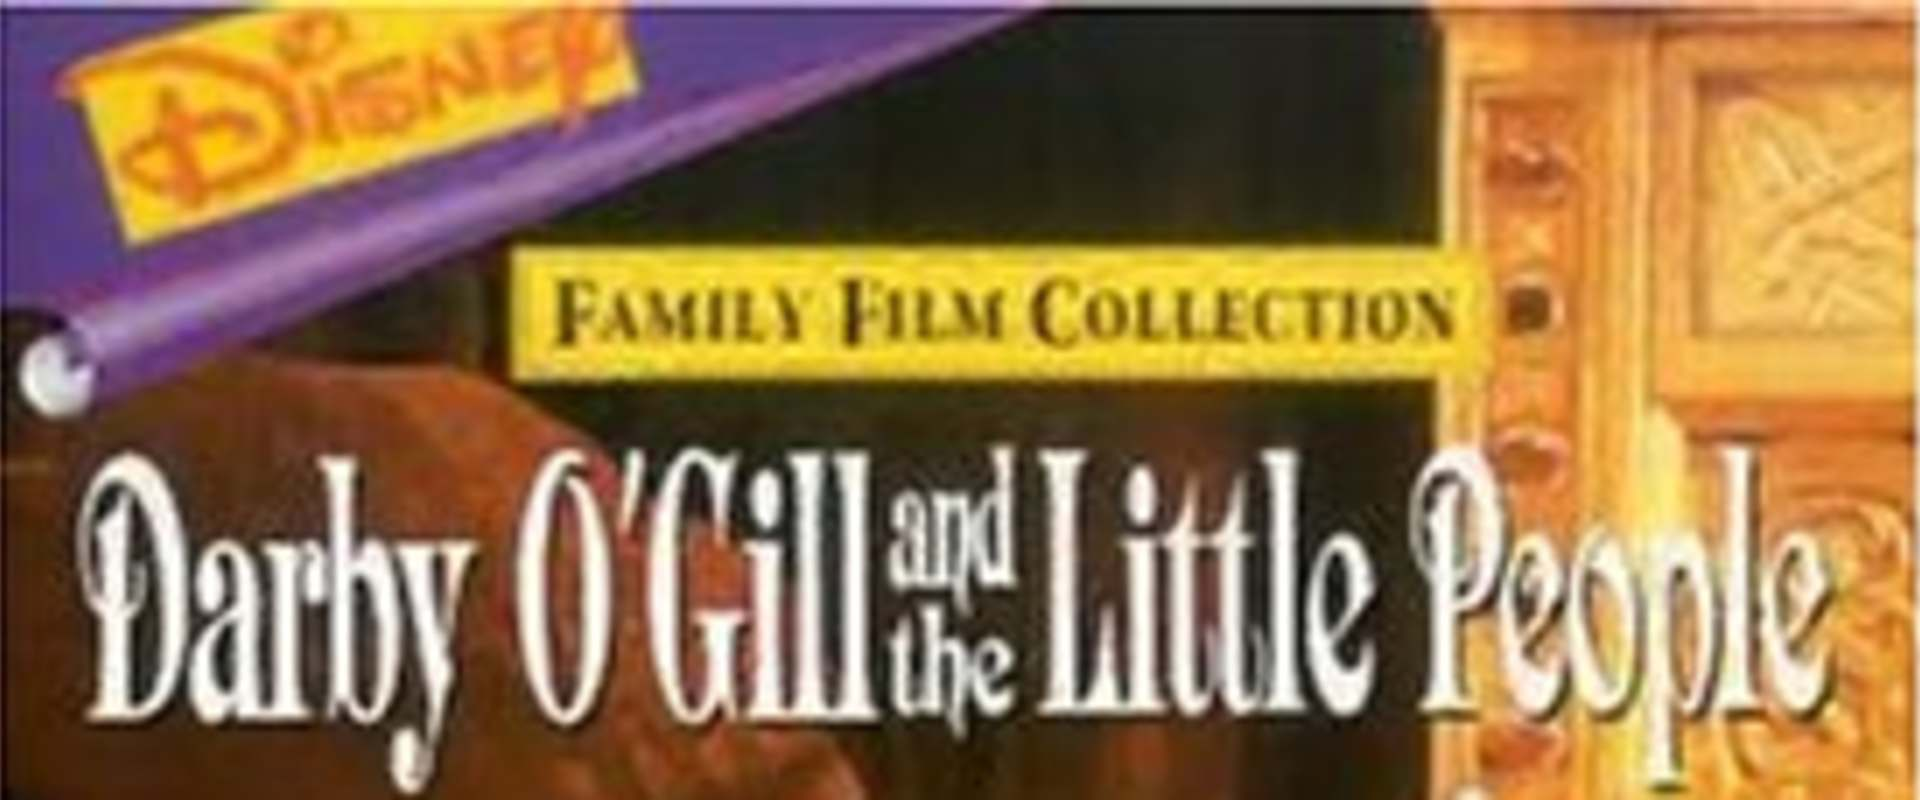 Darby O'Gill and the Little People background 2